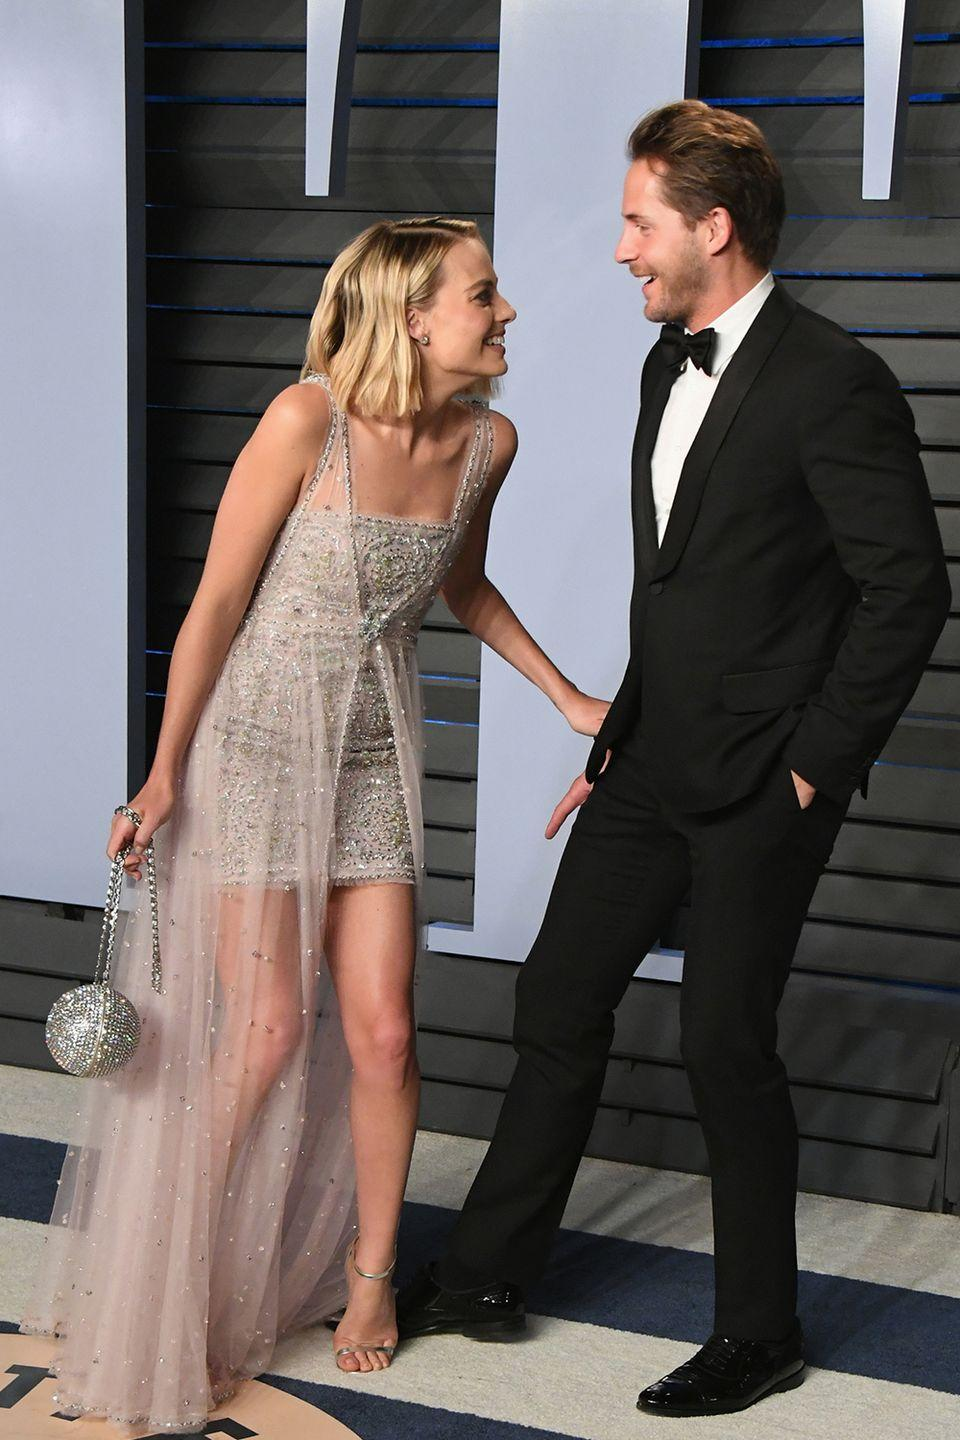 """<p><strong>How long they've been together:</strong> The duo met on the set of <em>Suite Franchise</em> in 2013—Robbie was a supporting actress and Ackerley an assistant director. After moving from friends, to roommates, to an official couple, Margot and Ackerley wed in a secret ceremony in 2016. When asked about meeting Ackerley, Margot told <em>Vogue</em>, """"We were friends for so long. I was always in love with him, but I thought, <em>Oh, he would never love me back. Don't make it weird, Margot</em>…And then it happened, and I was like, <em>Of course we're together. This makes so much sense, the way nothing has ever made sense before</em>.""""<br></p><p><strong>Why you forgot they're together:</strong> One of the reasons Margot comes across as so cool and laid back is because, well, she really is that cool and laid back. The actress rarely posts photos with her producer husband, and they keep their red-carpet PDA to a minimum. (Though they look particularly cute here.)<br></p>"""